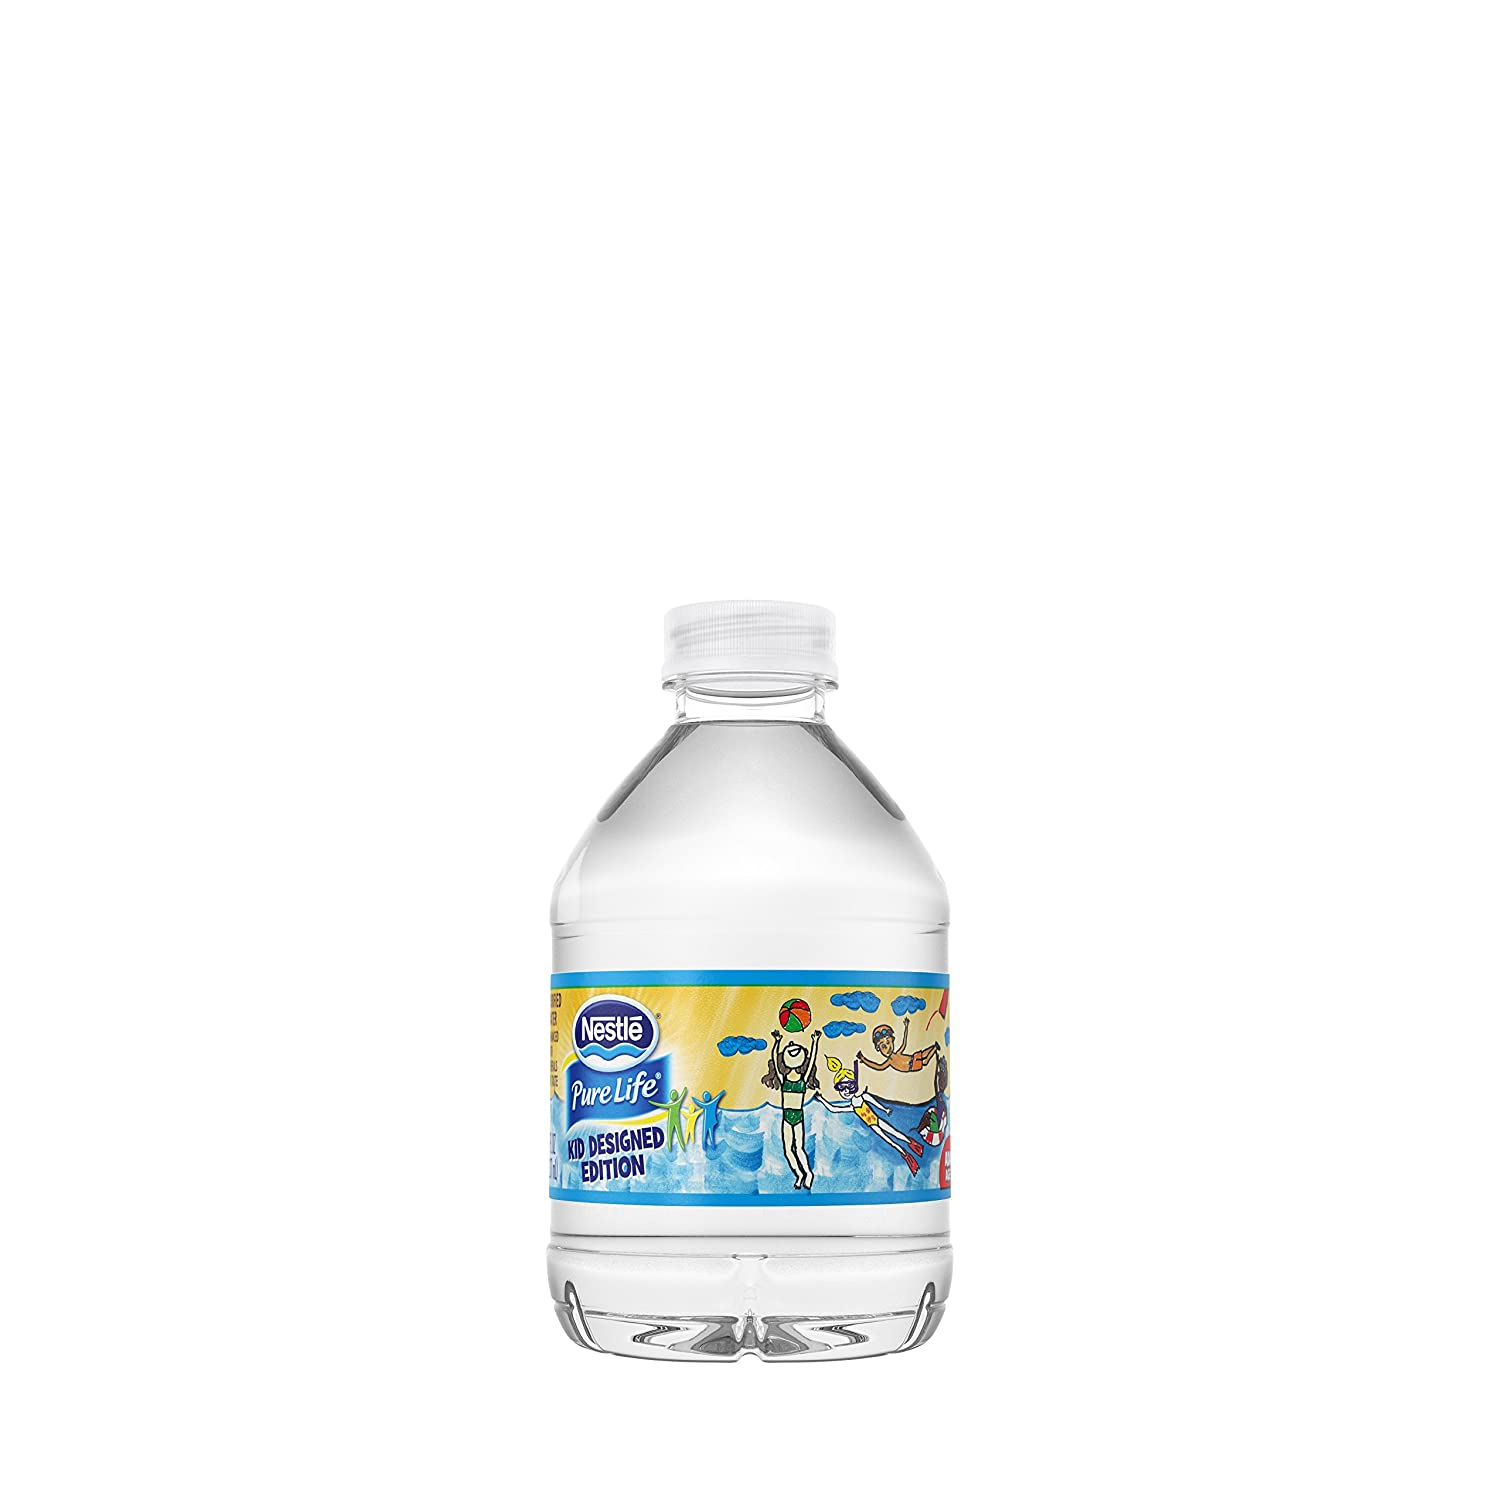 Refresh your senses with the clean taste of this Nestle Pure Life bottled purified water. The convenient case of 24 recyclable plastic bottles is ideal for stocking up, while the ounce size is perfect for pairing with lunch or taking back to your thegamingpistol.ml: $